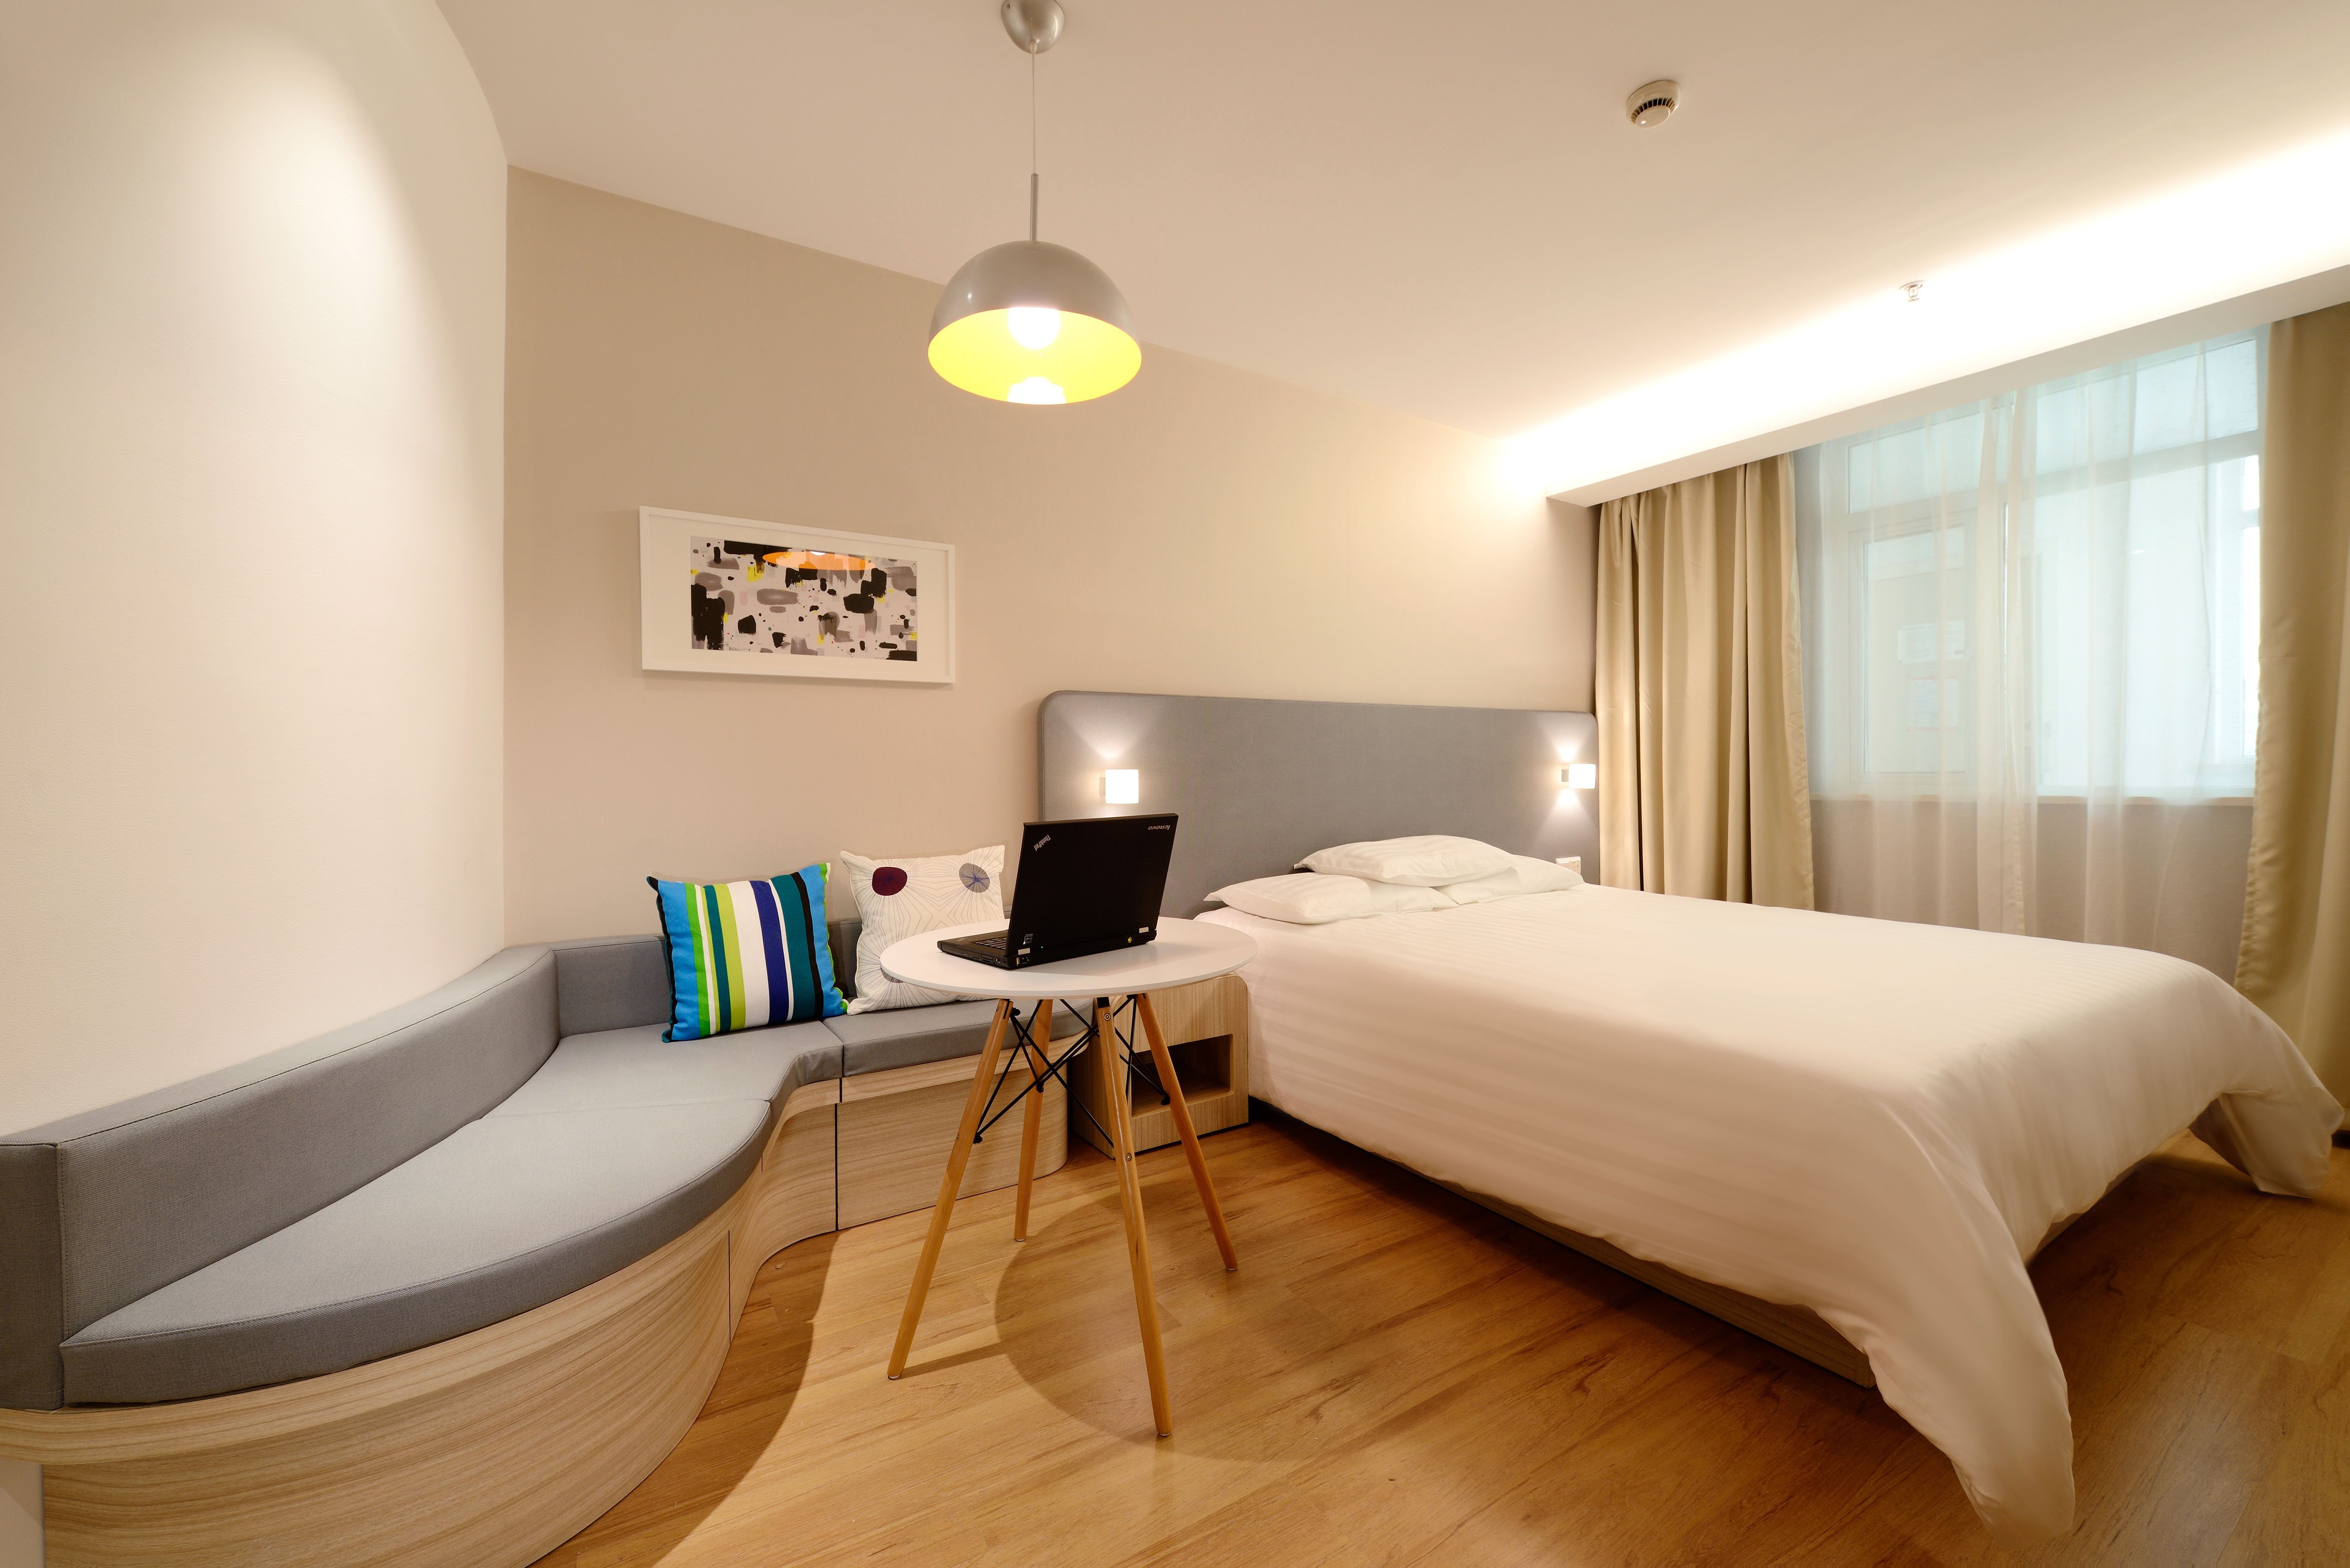 Interior Designing Tips: Creating Interiors Inspired by Hotel Rooms - Hamstech Blog